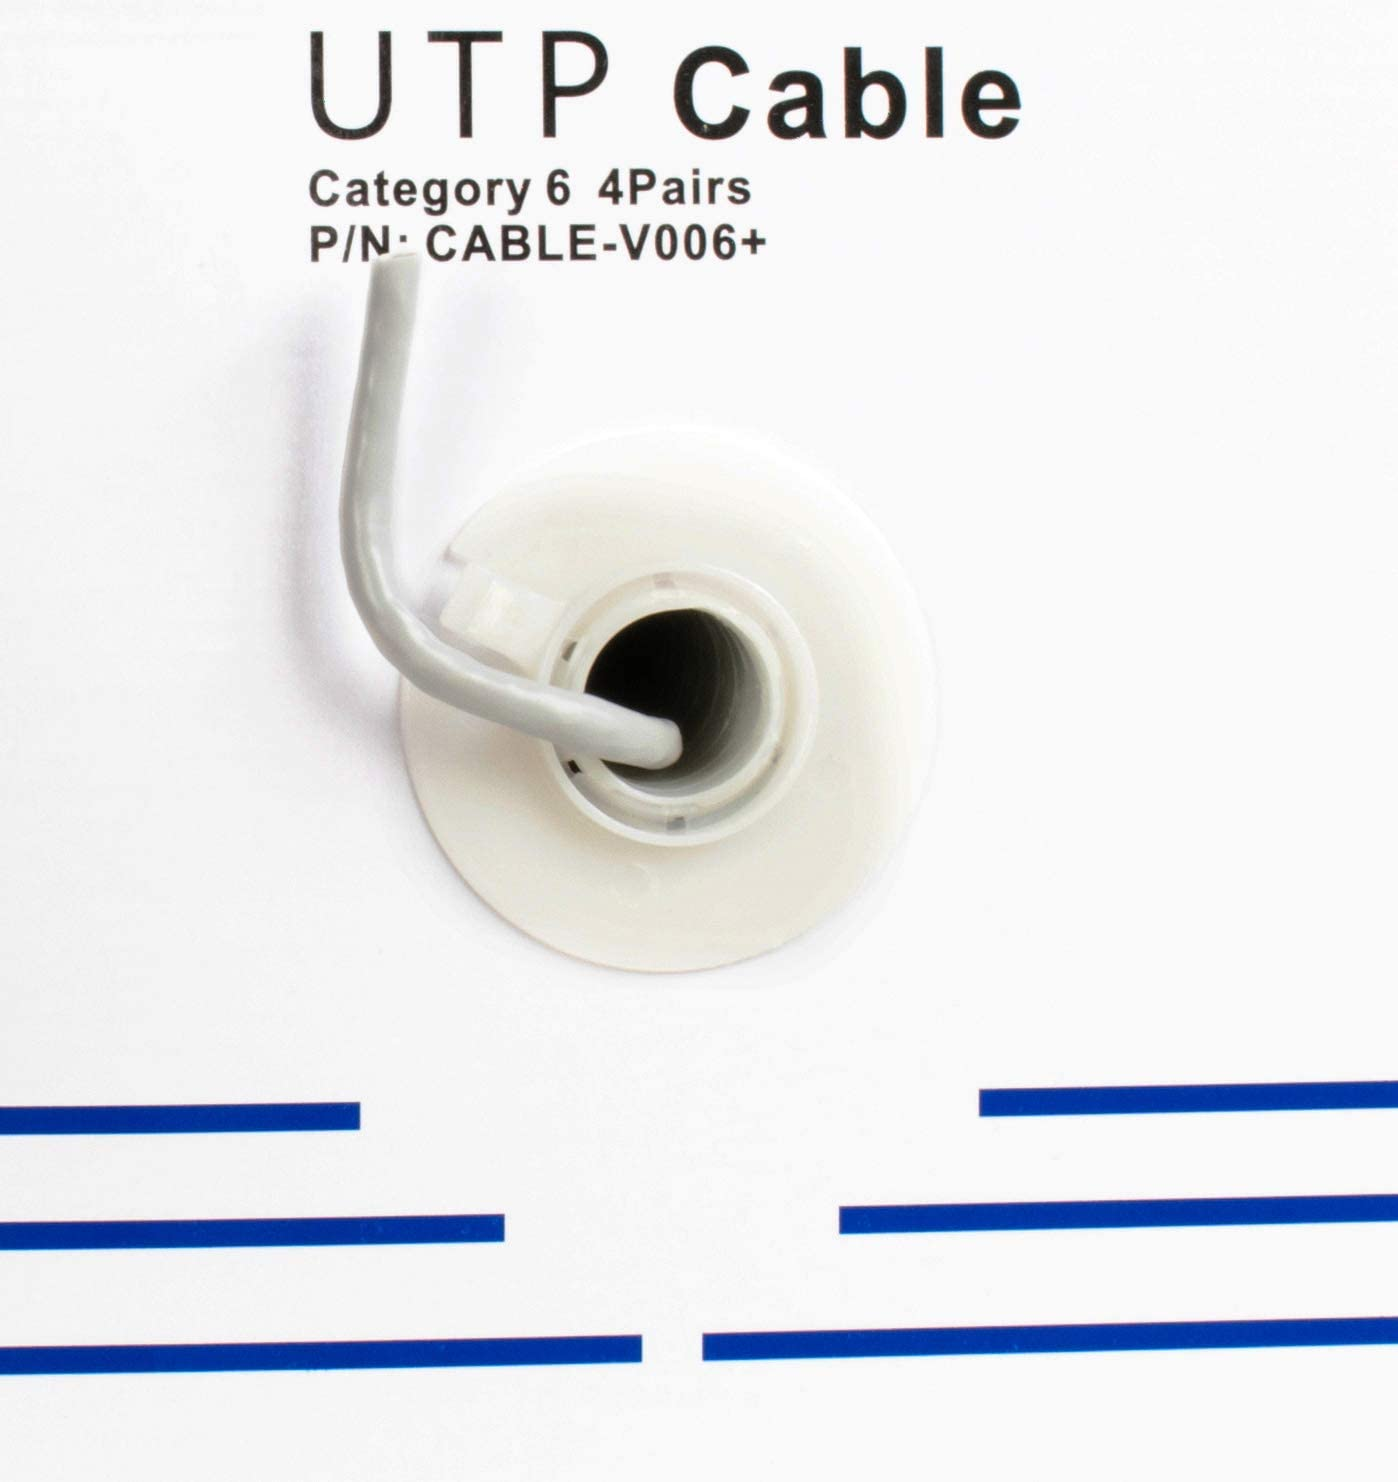 UTP Pull Box 23 AWG Network Installations Cat-6 Wire CABLE-V006 VIVO Gray 500ft Bulk Cat6 CCA Ethernet Cable Indoor